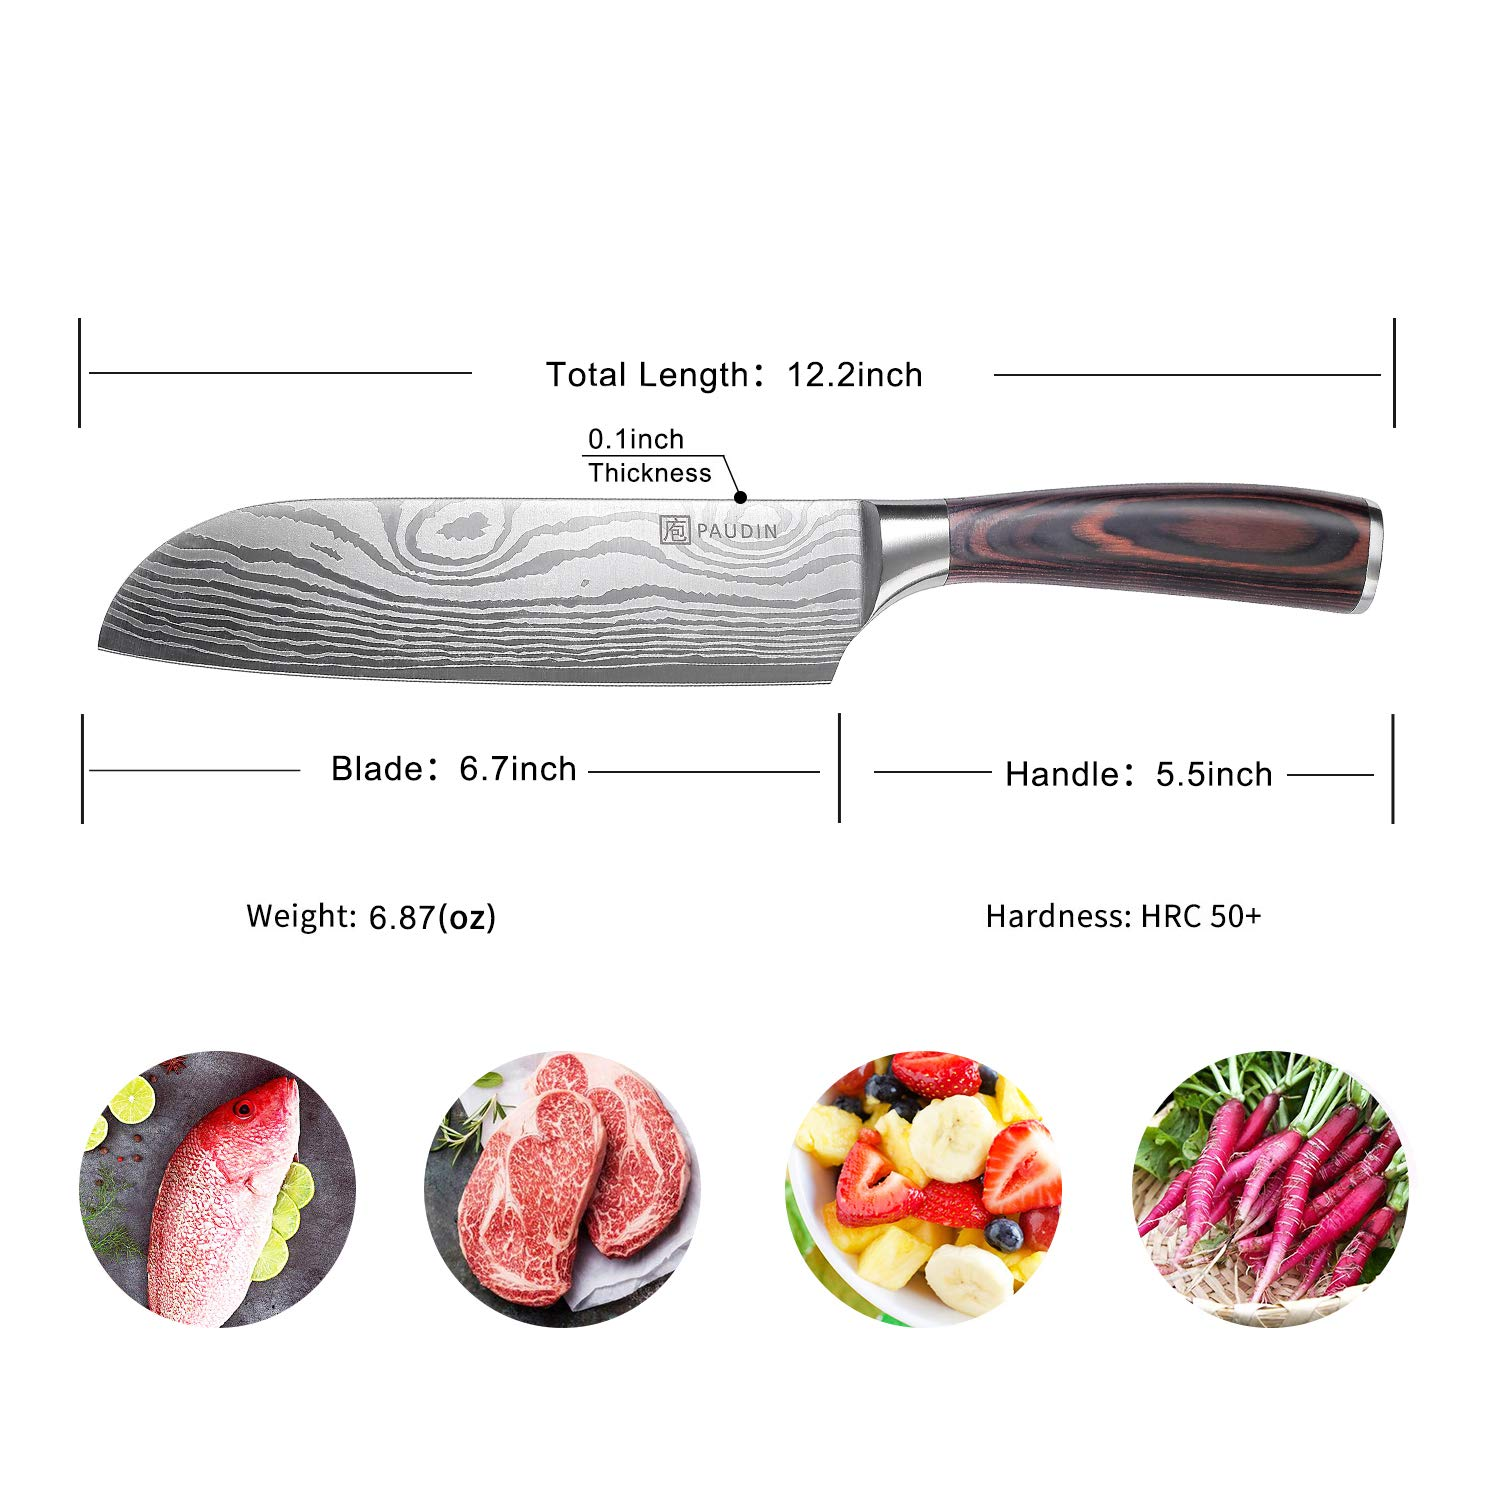 PAUDIN Classic 7 inch Hollow Ground Santoku Knife, German High Carbon Stainless Steel Kitchen Knife by PAUDIN (Image #7)